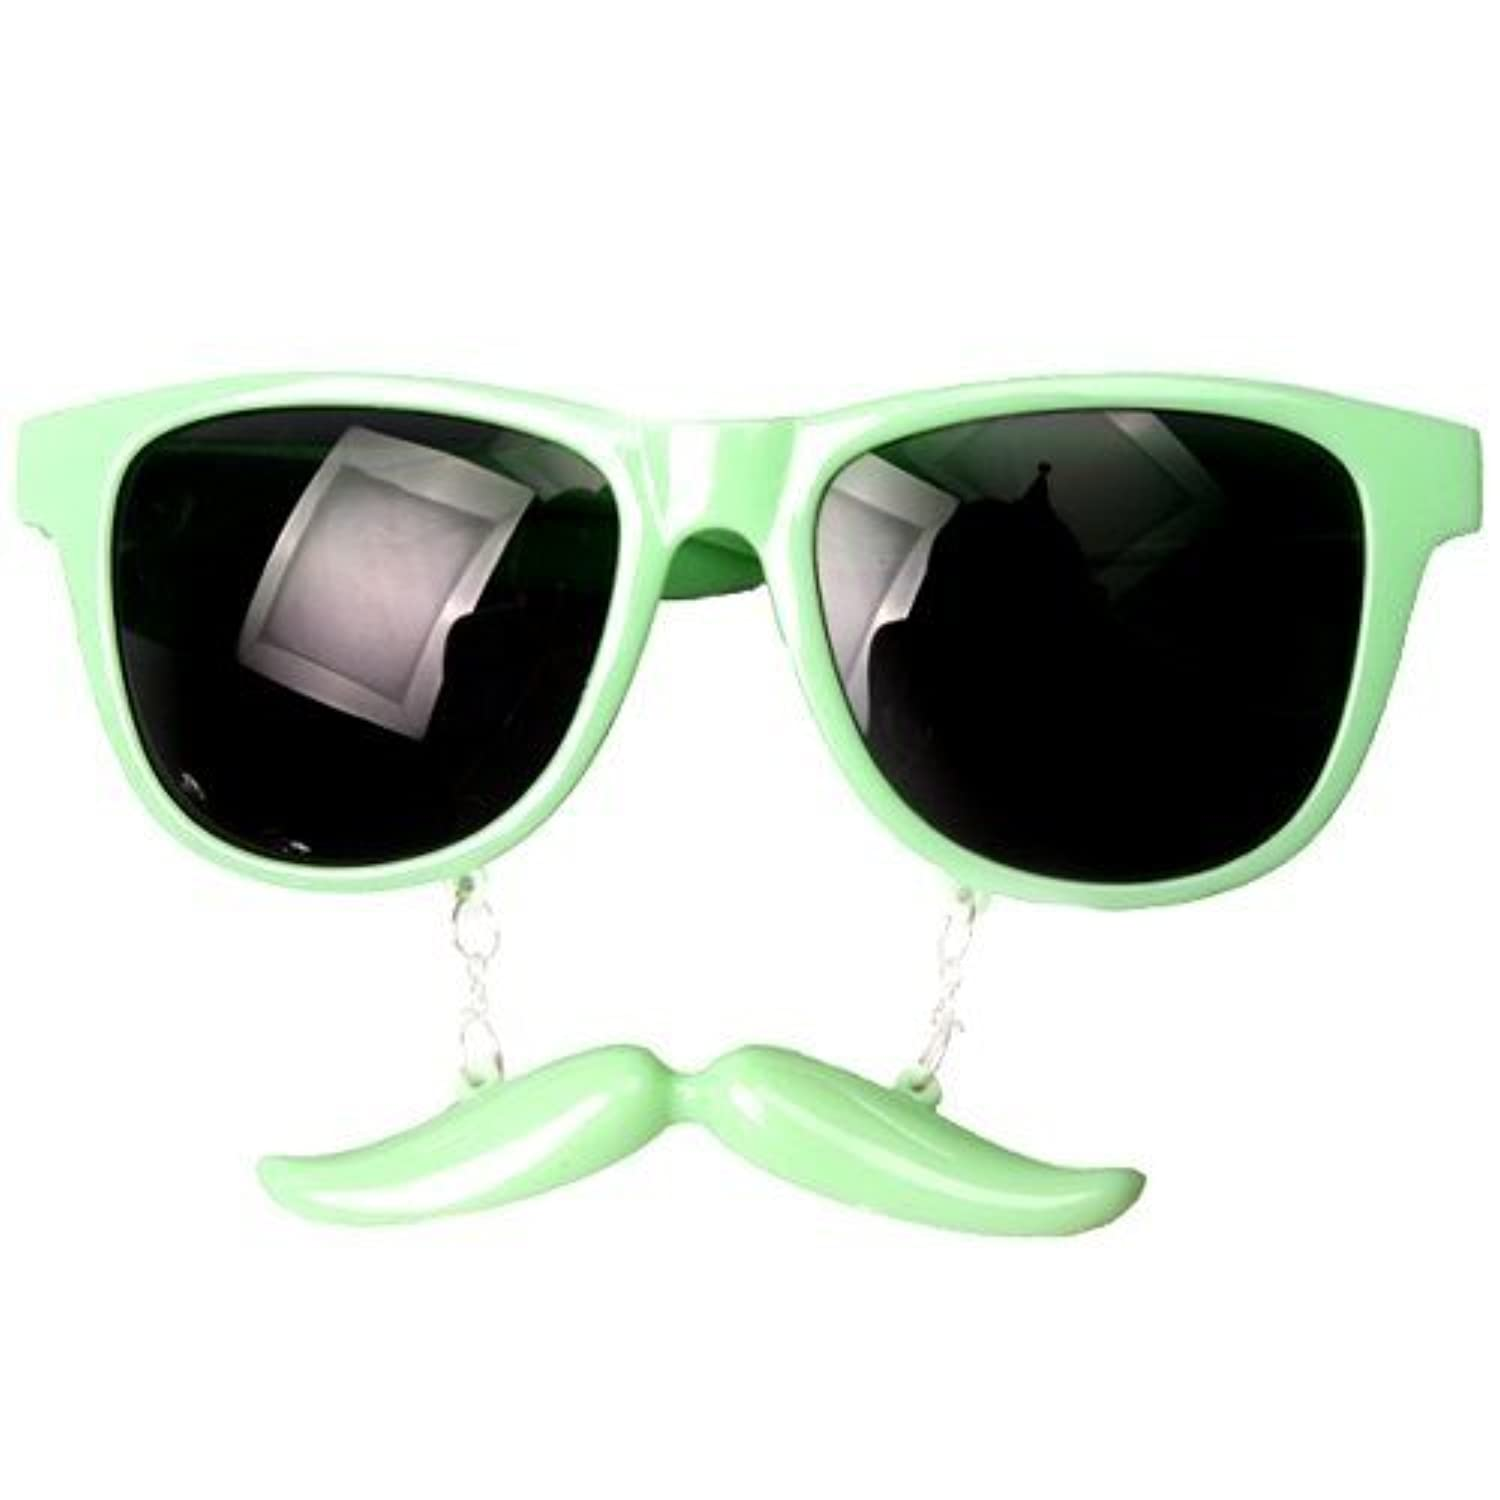 Fun Party Toy - Sunglasses mustache